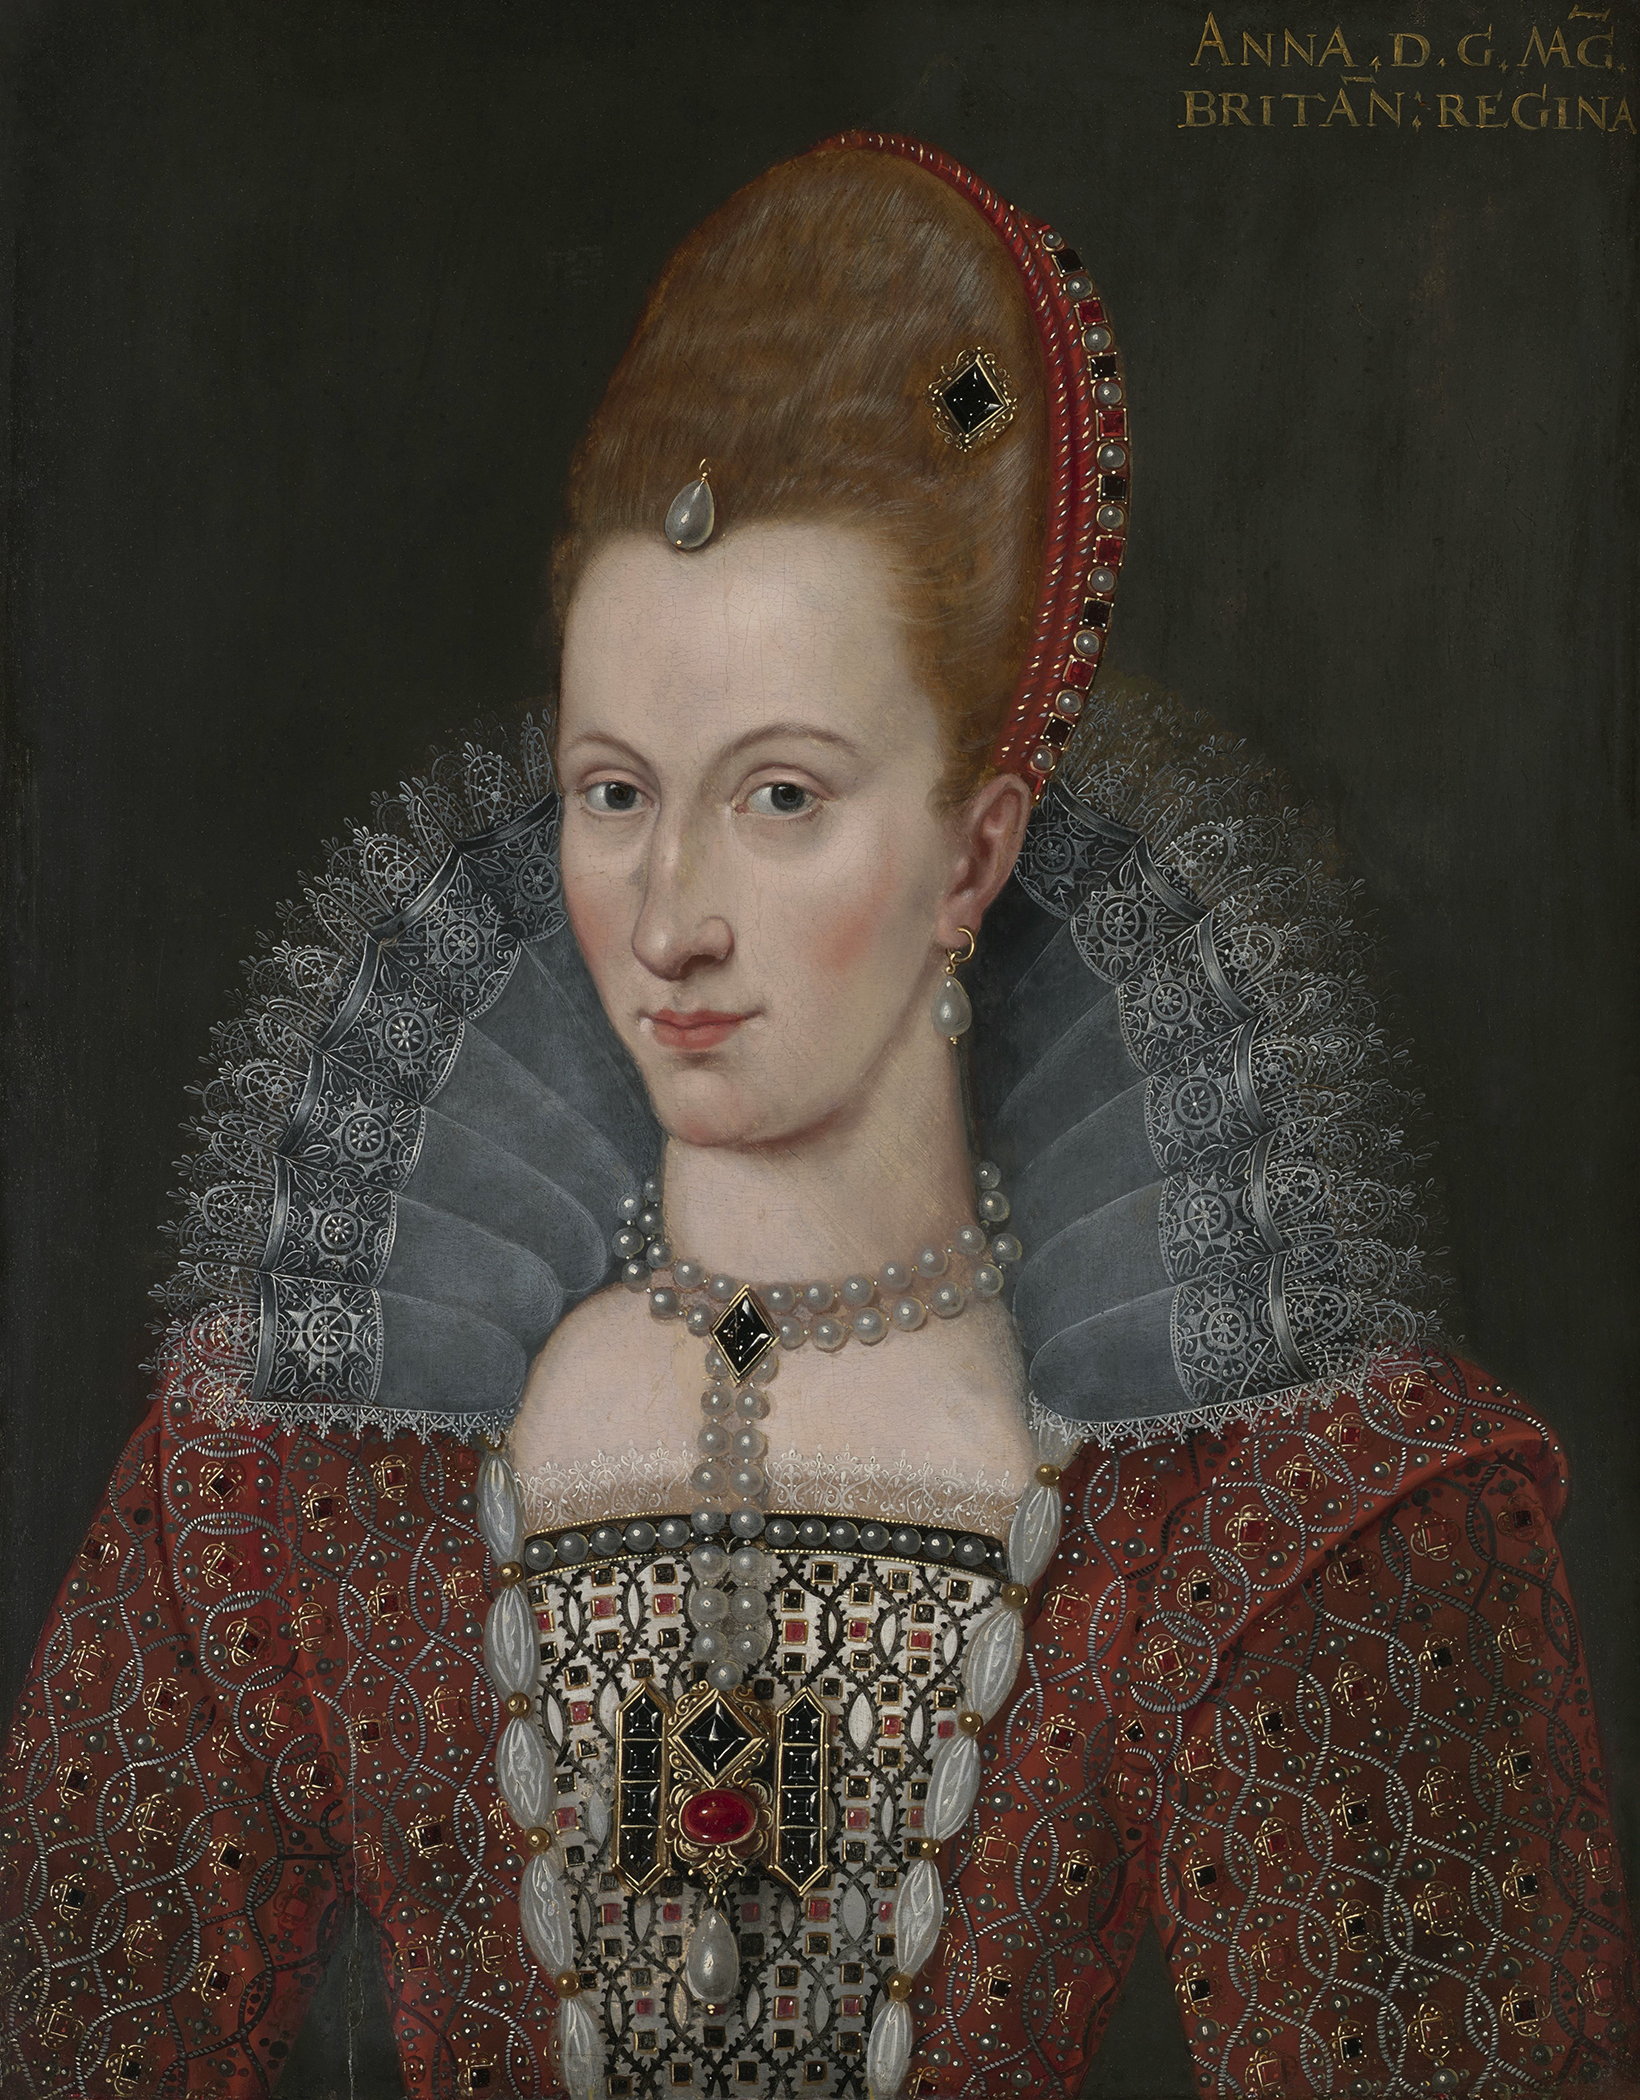 Portrait of Anne of Denmark (1574-1619), Queen consort of Scotland (1589), Queen consort of England and Ireland (1603), 1600 | Portraits of Kings